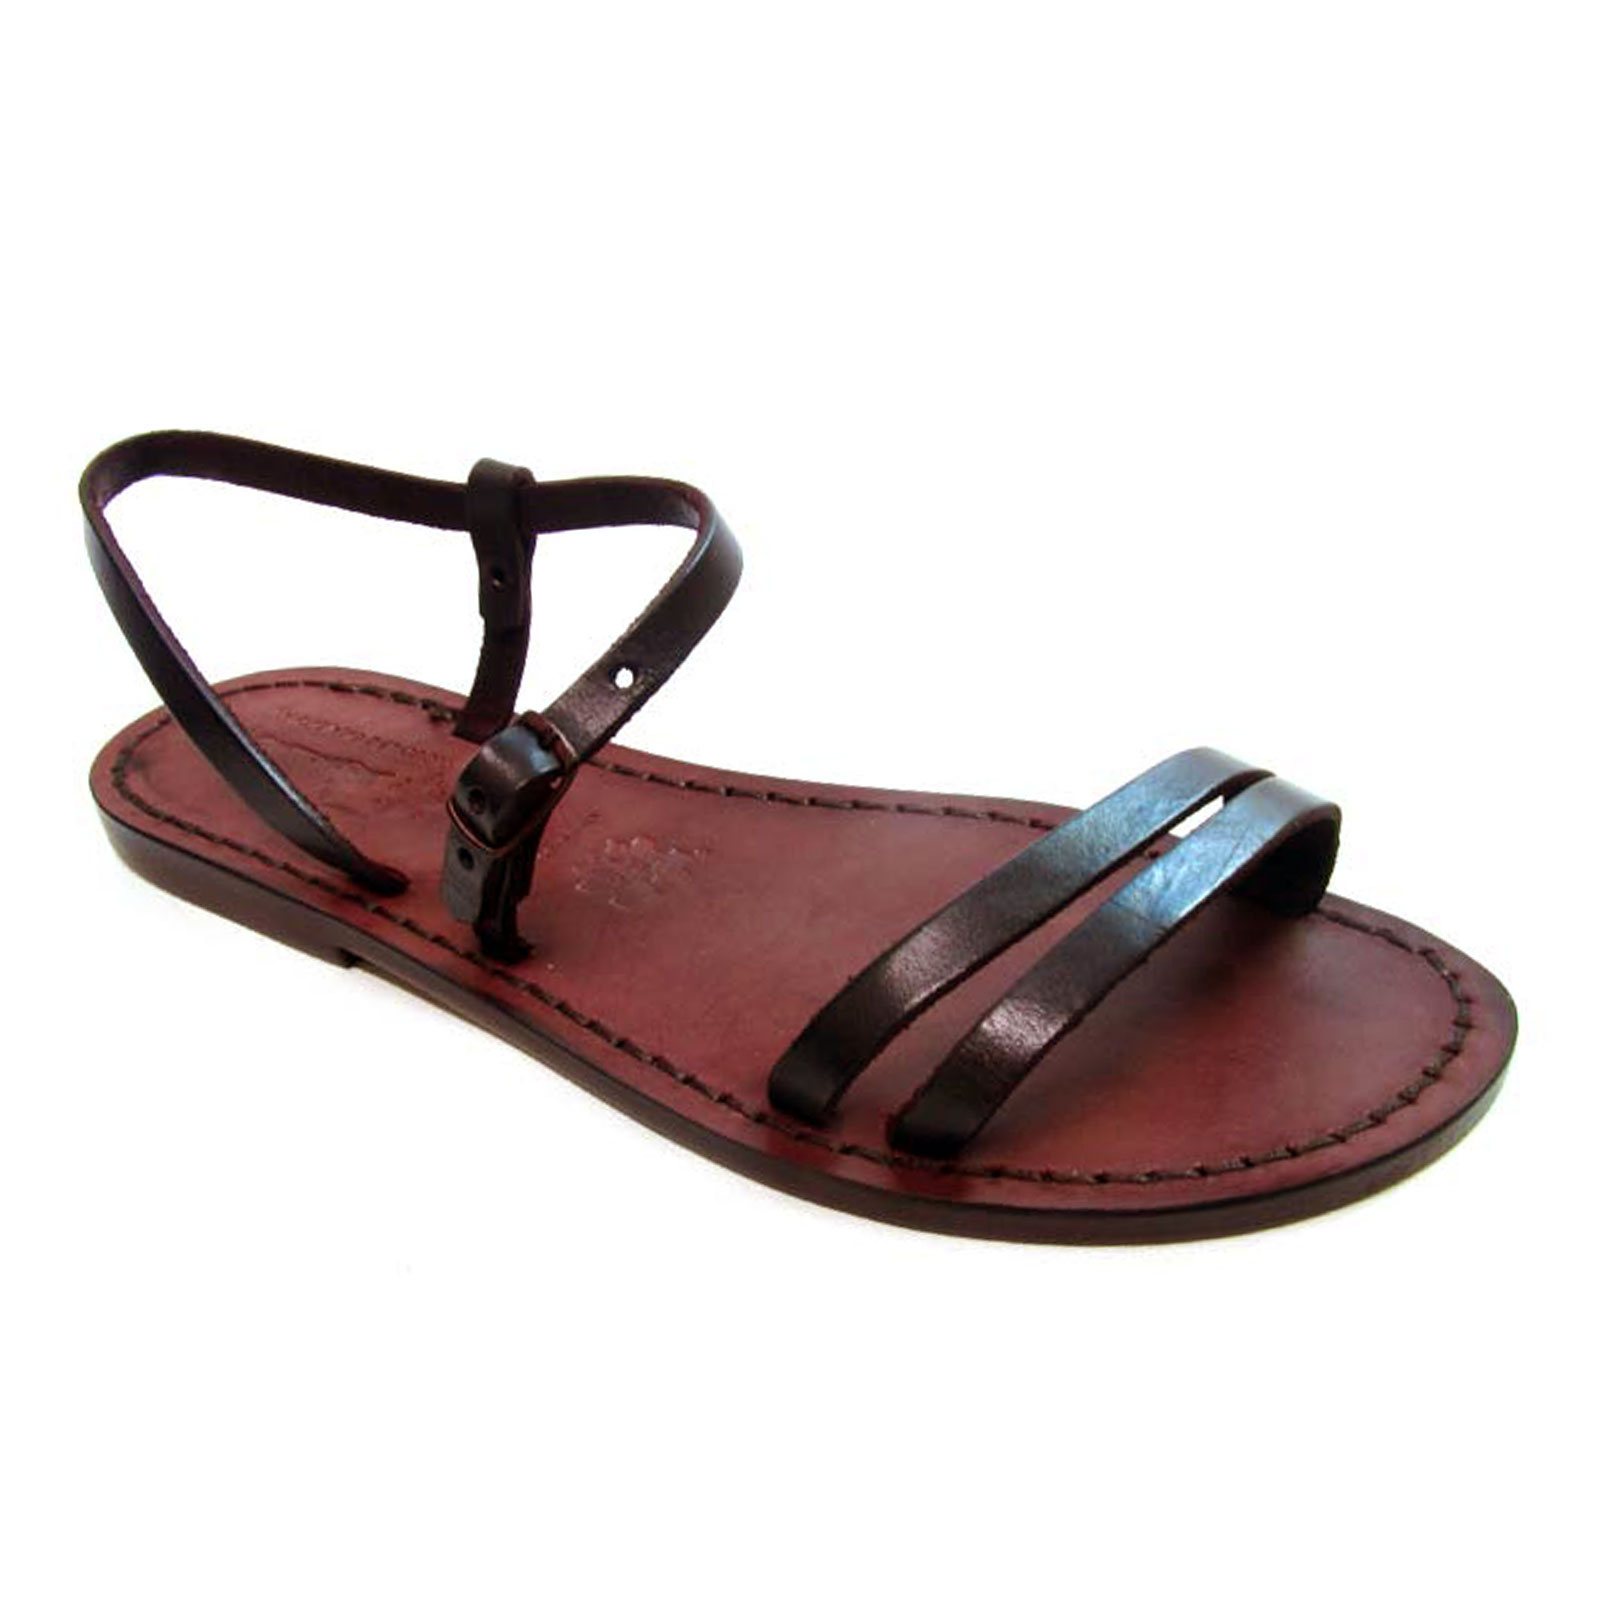 432cc8b0634c4e Handmade dark brown flat sandals for women in real greased vachetta leather  with leather or rubber sole made by experts in Italy in the best tradition  of ...